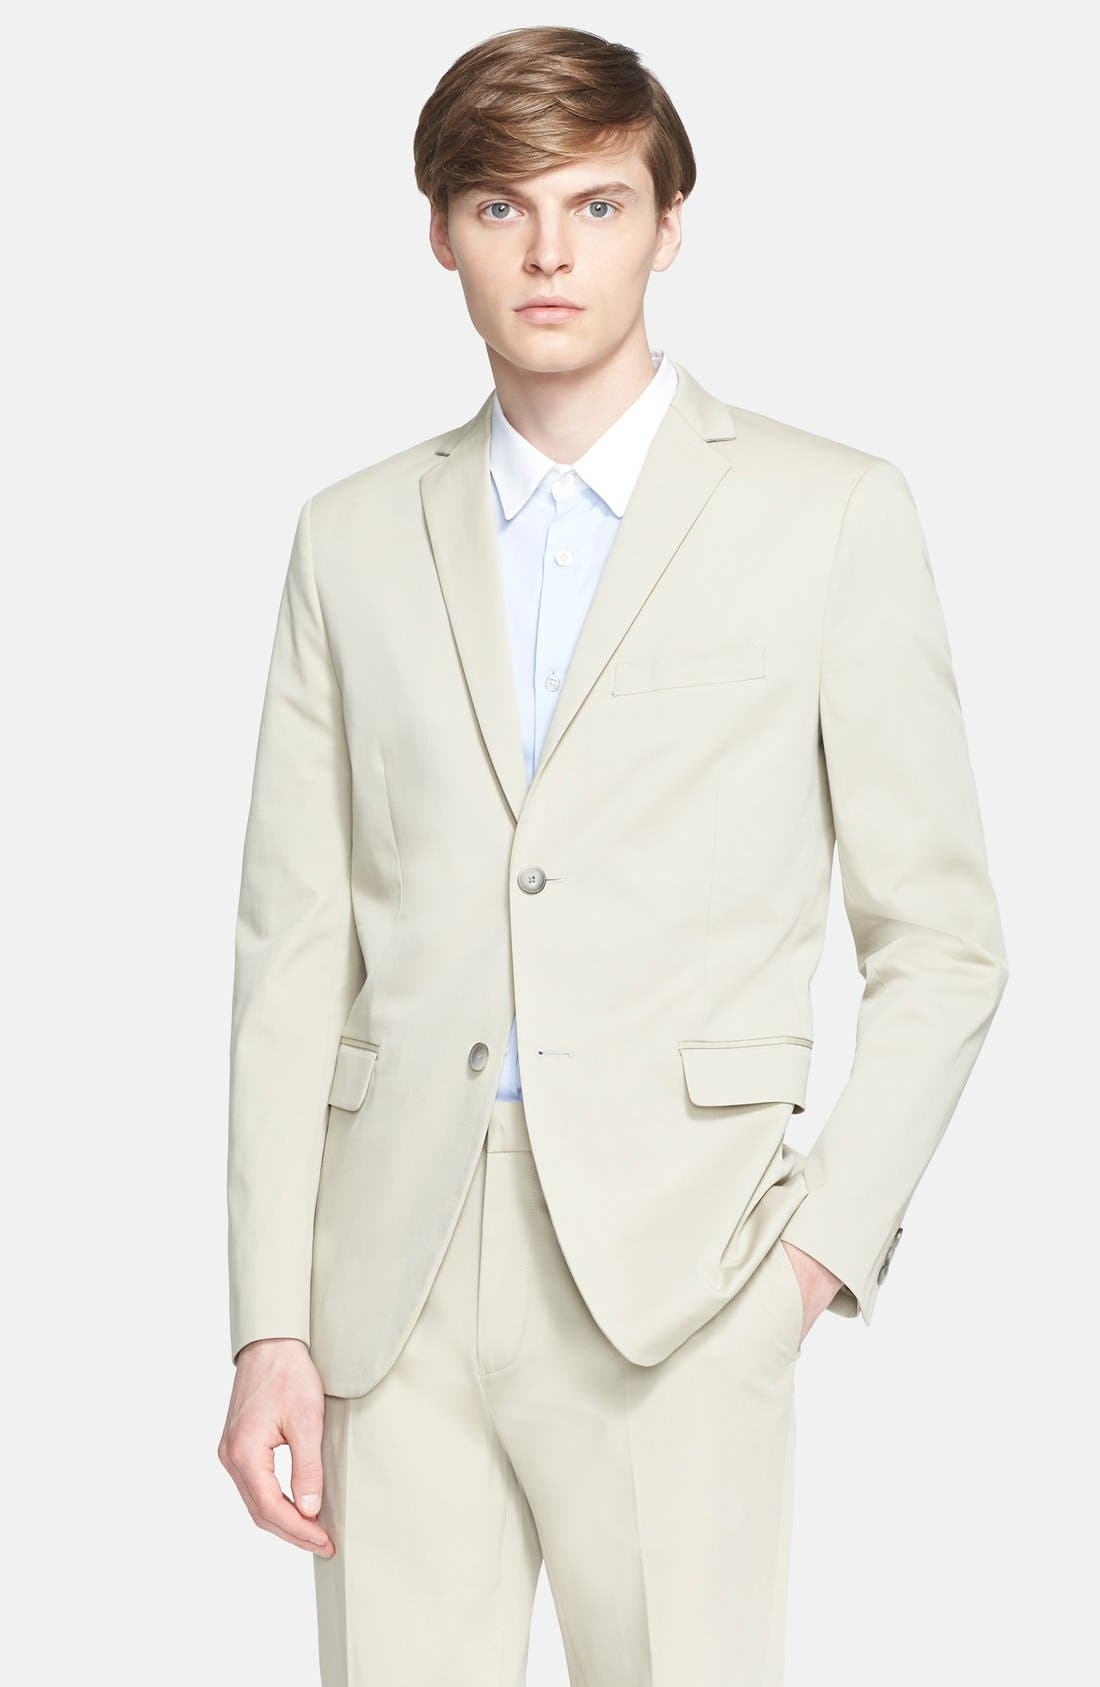 THEORY, 'Straslund' Trim Fit Two-Button Blazer, Main thumbnail 1, color, 261